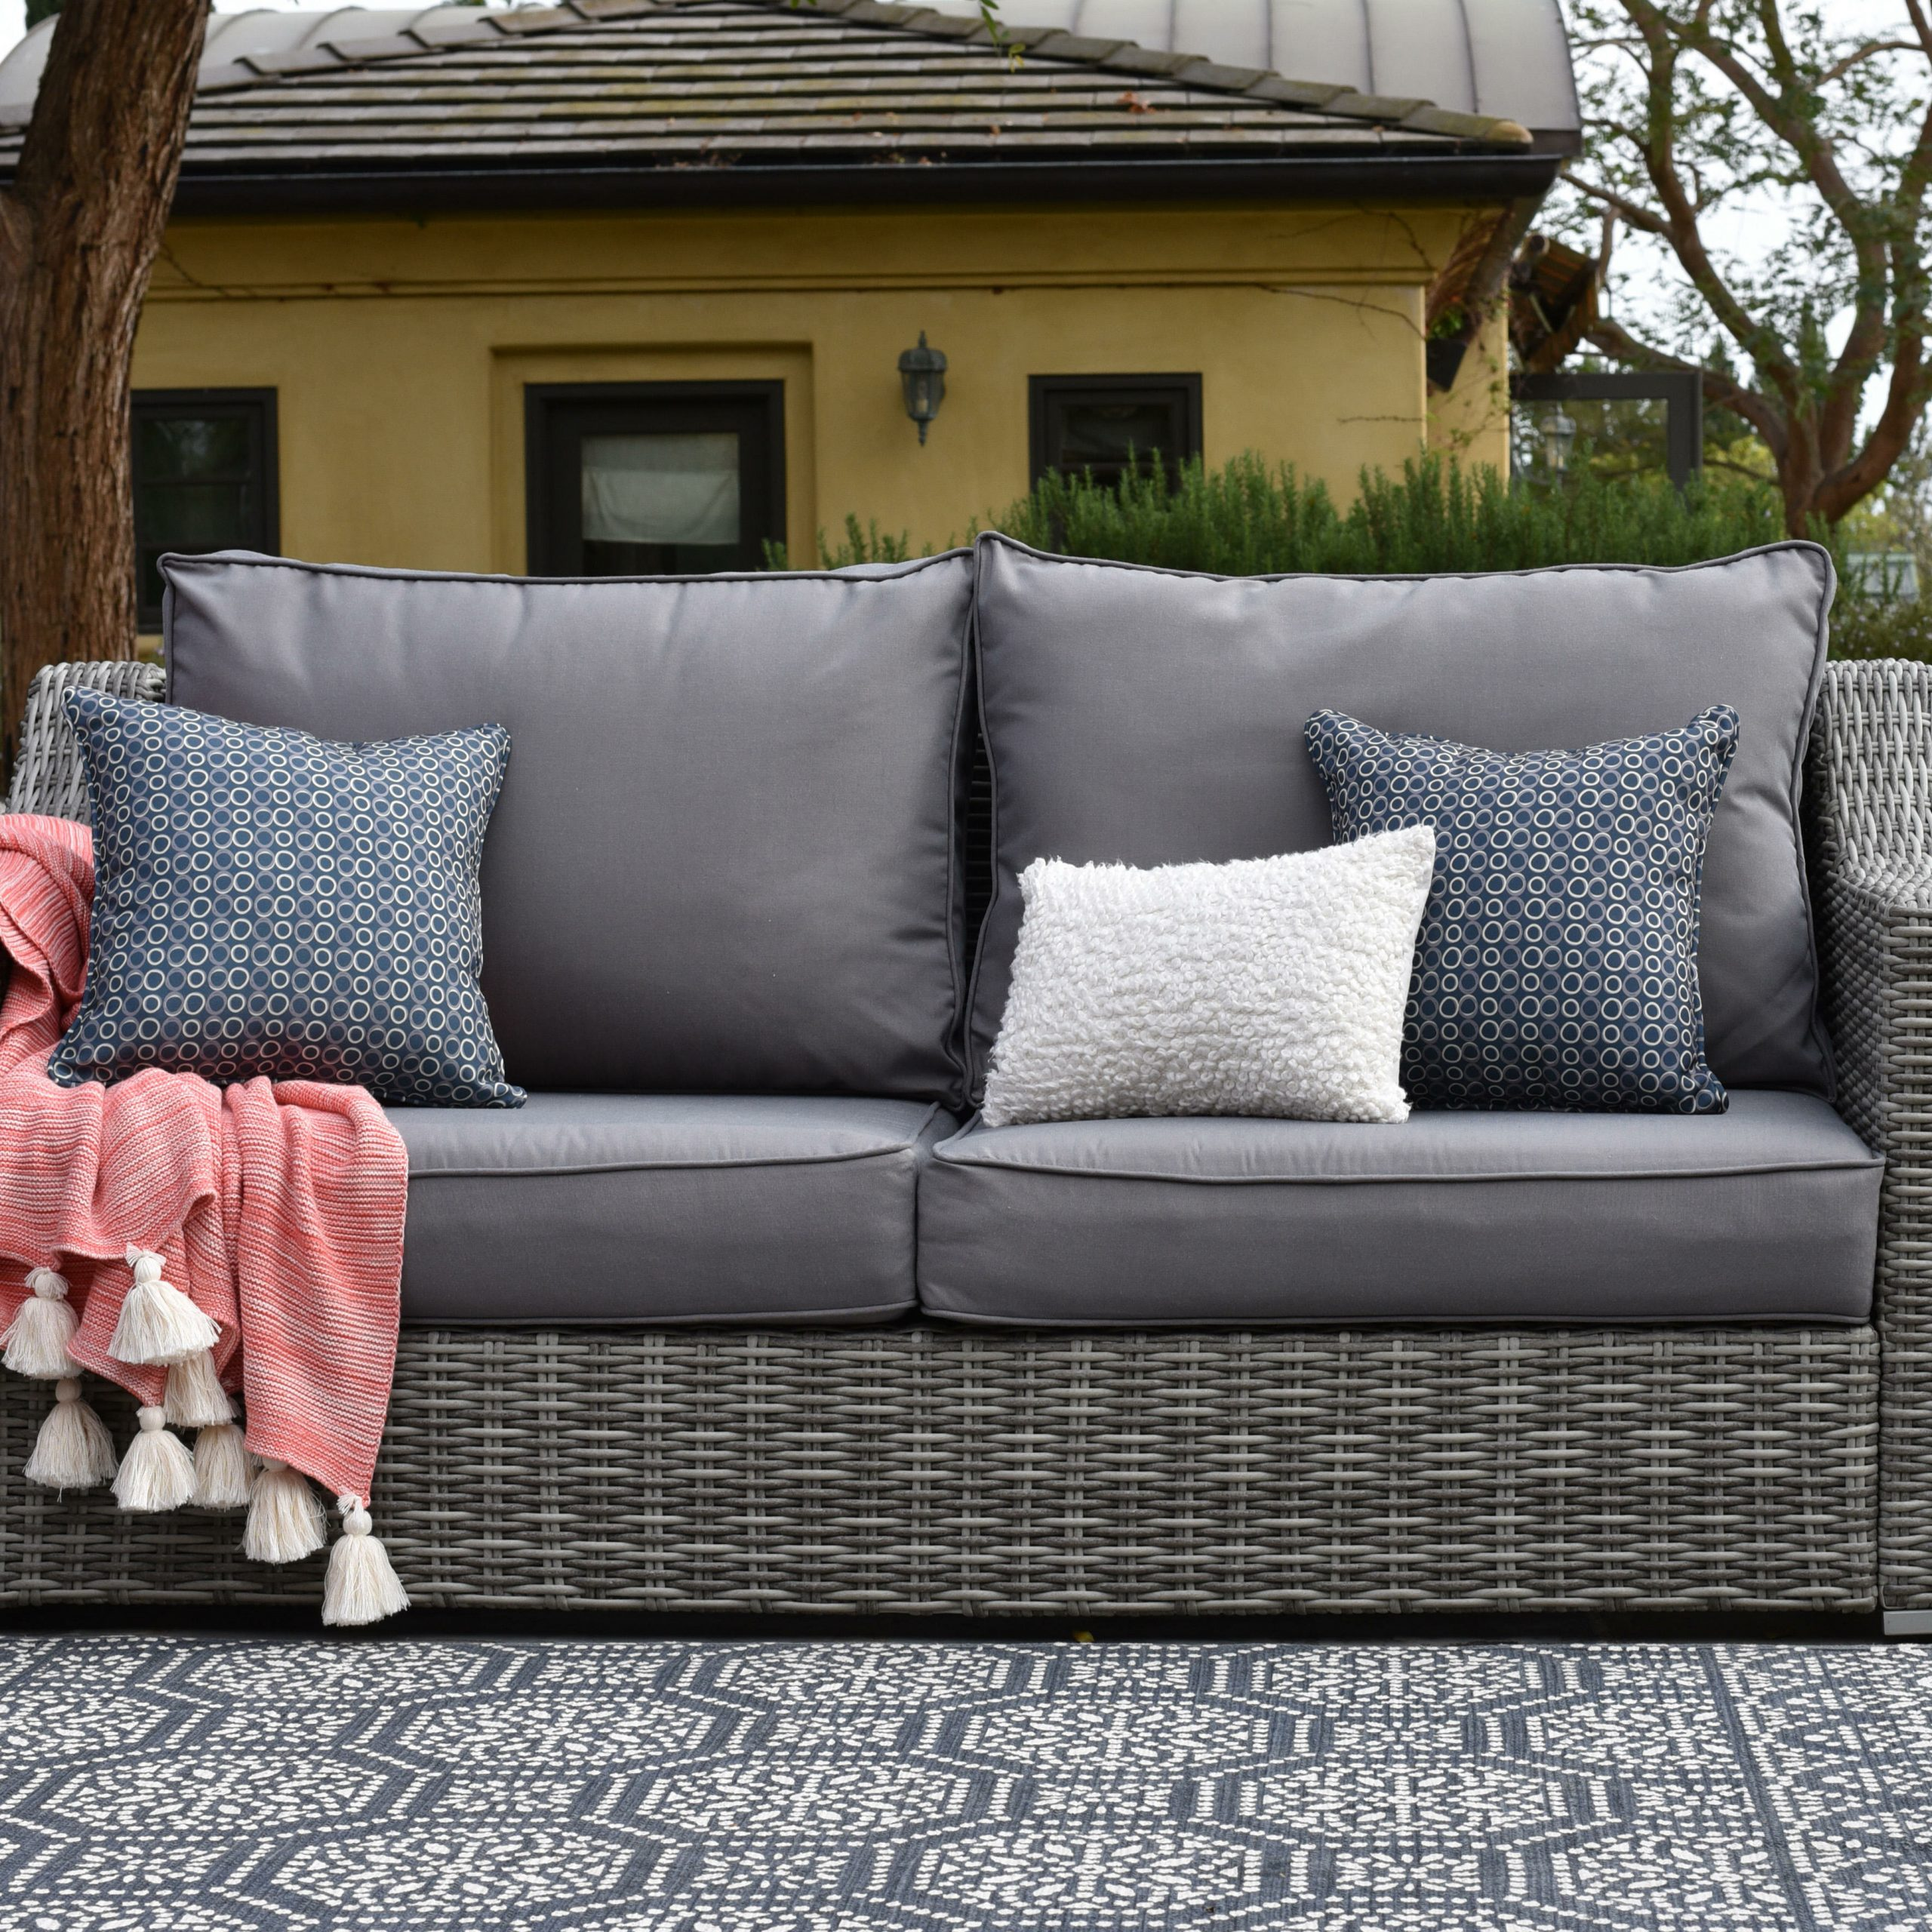 Popular Vallauris Patio Sofa With Cushions In Vallauris Storage Patio Sectionals With Cushions (View 4 of 25)